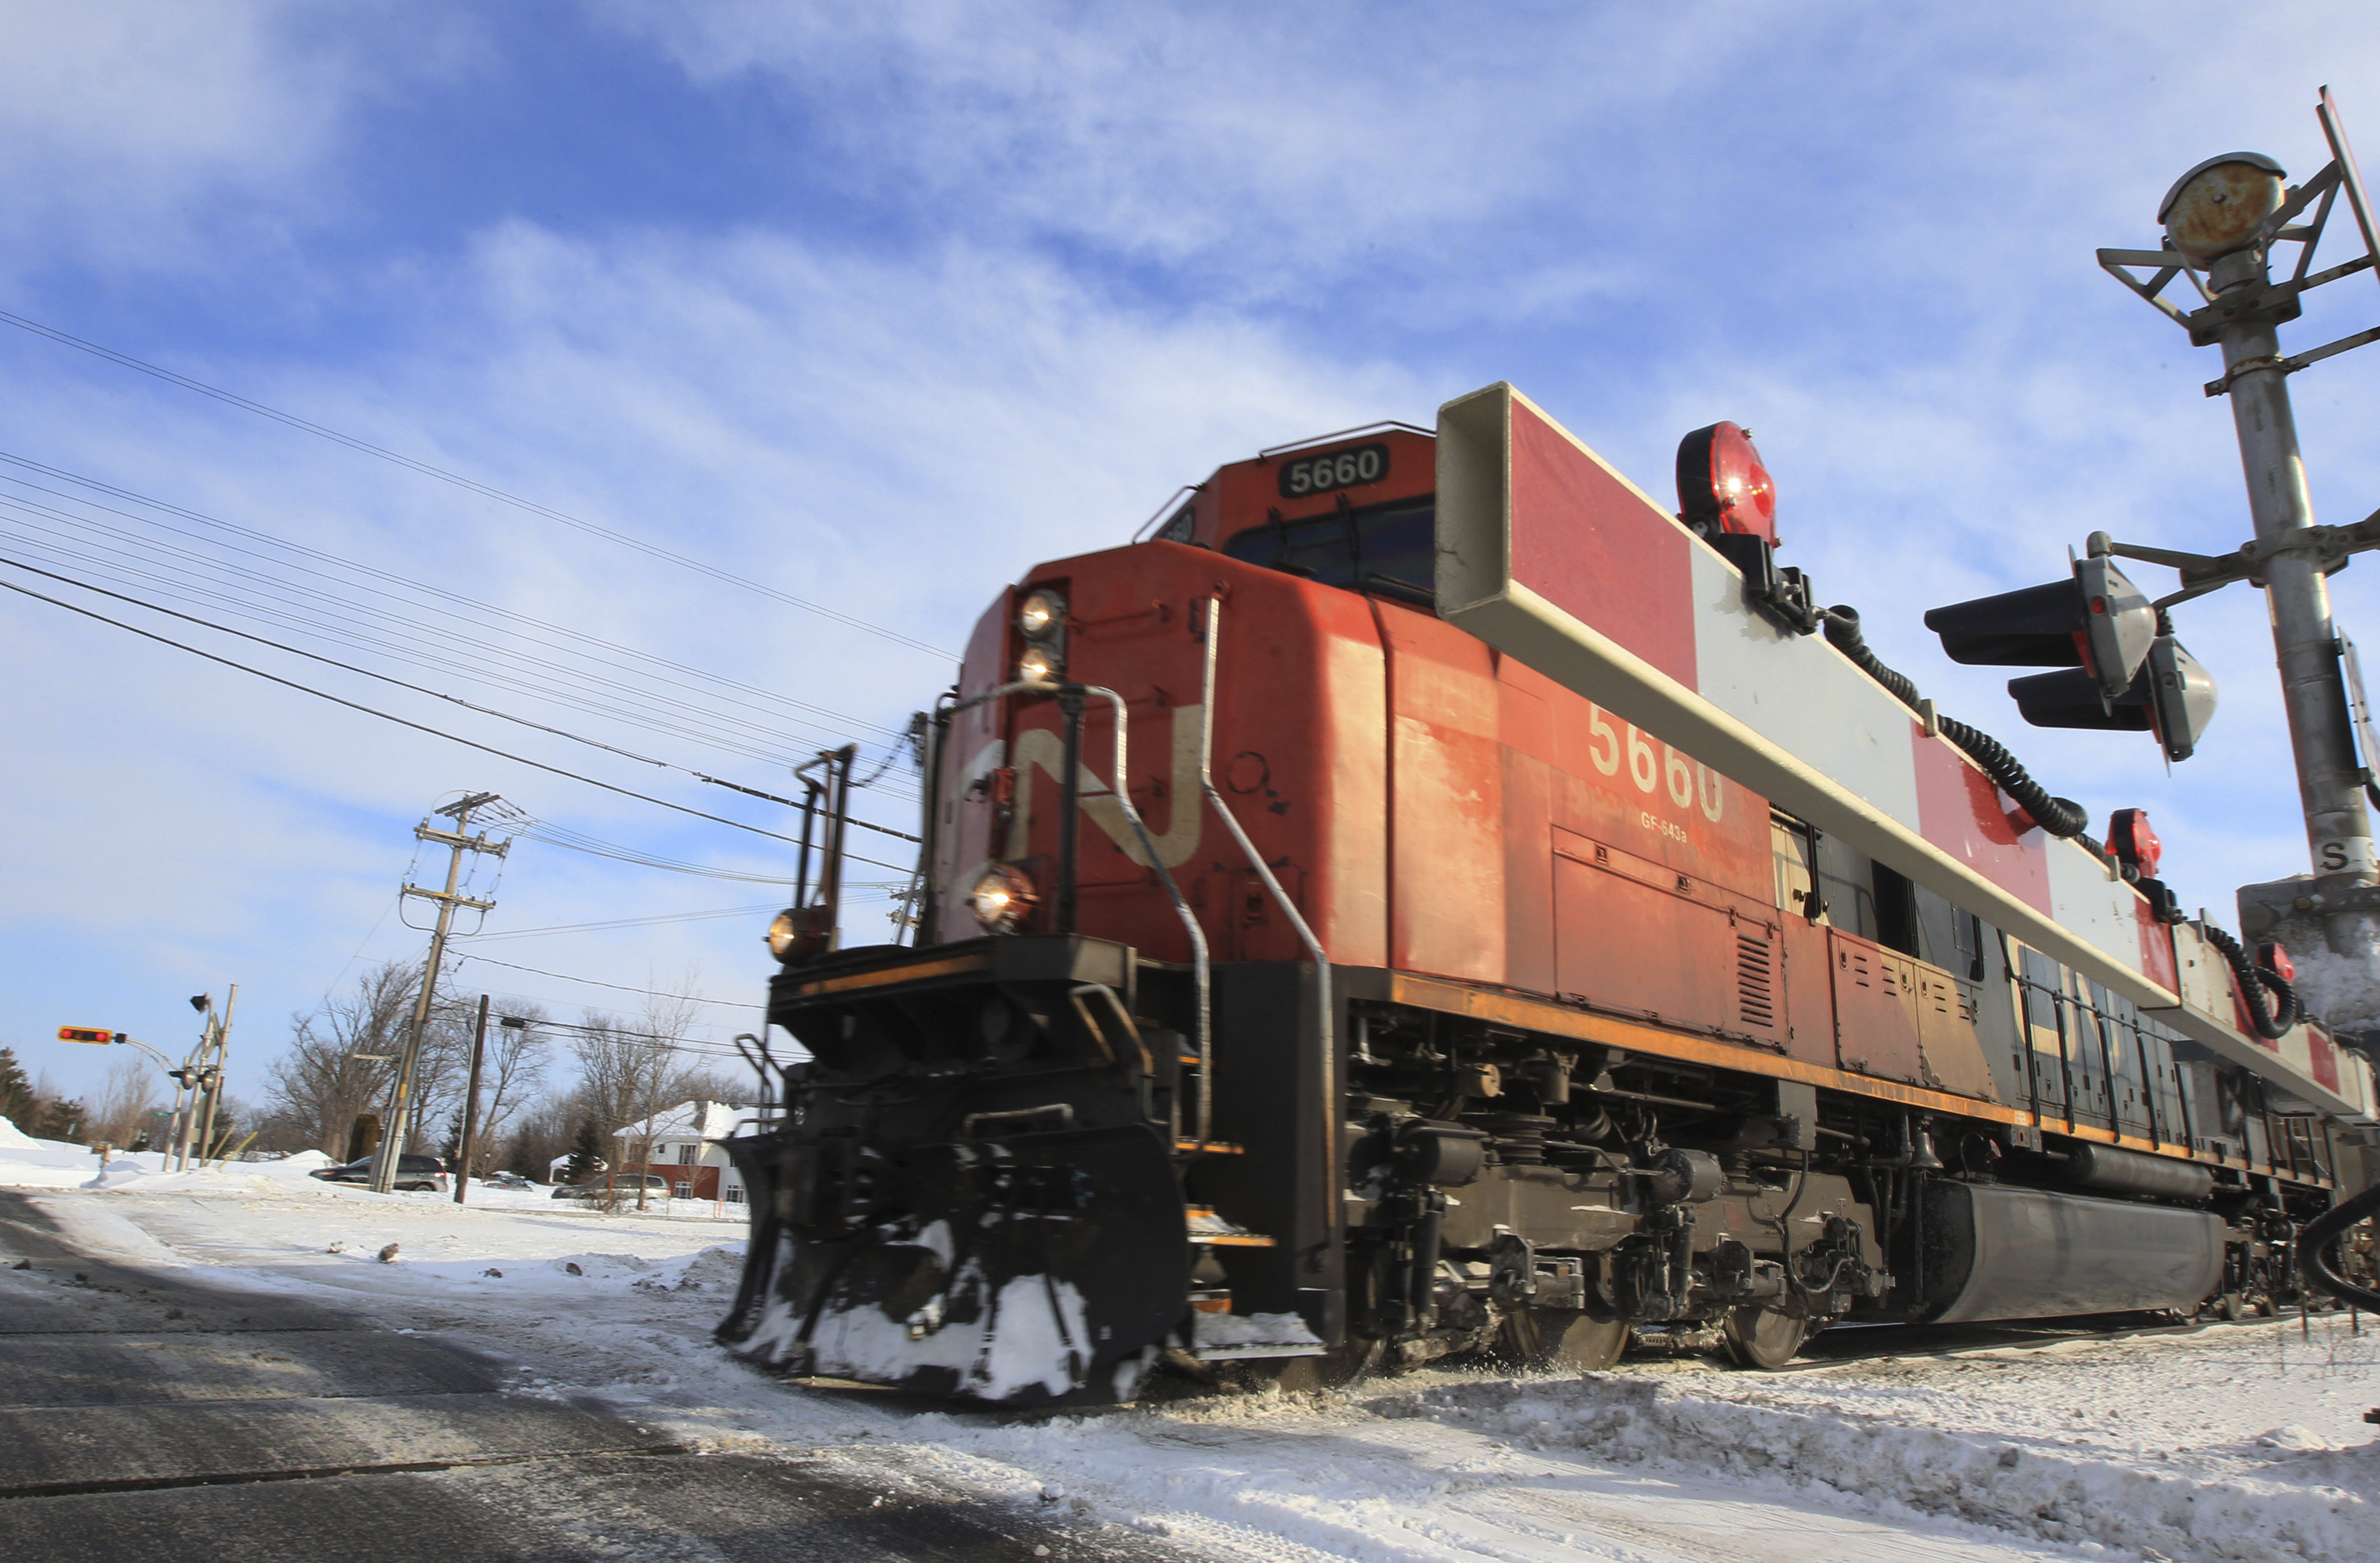 A Canadian National Railway train travels westward on a track in Montreal, February 15, 2015. REUTERS/Christinne Muschi